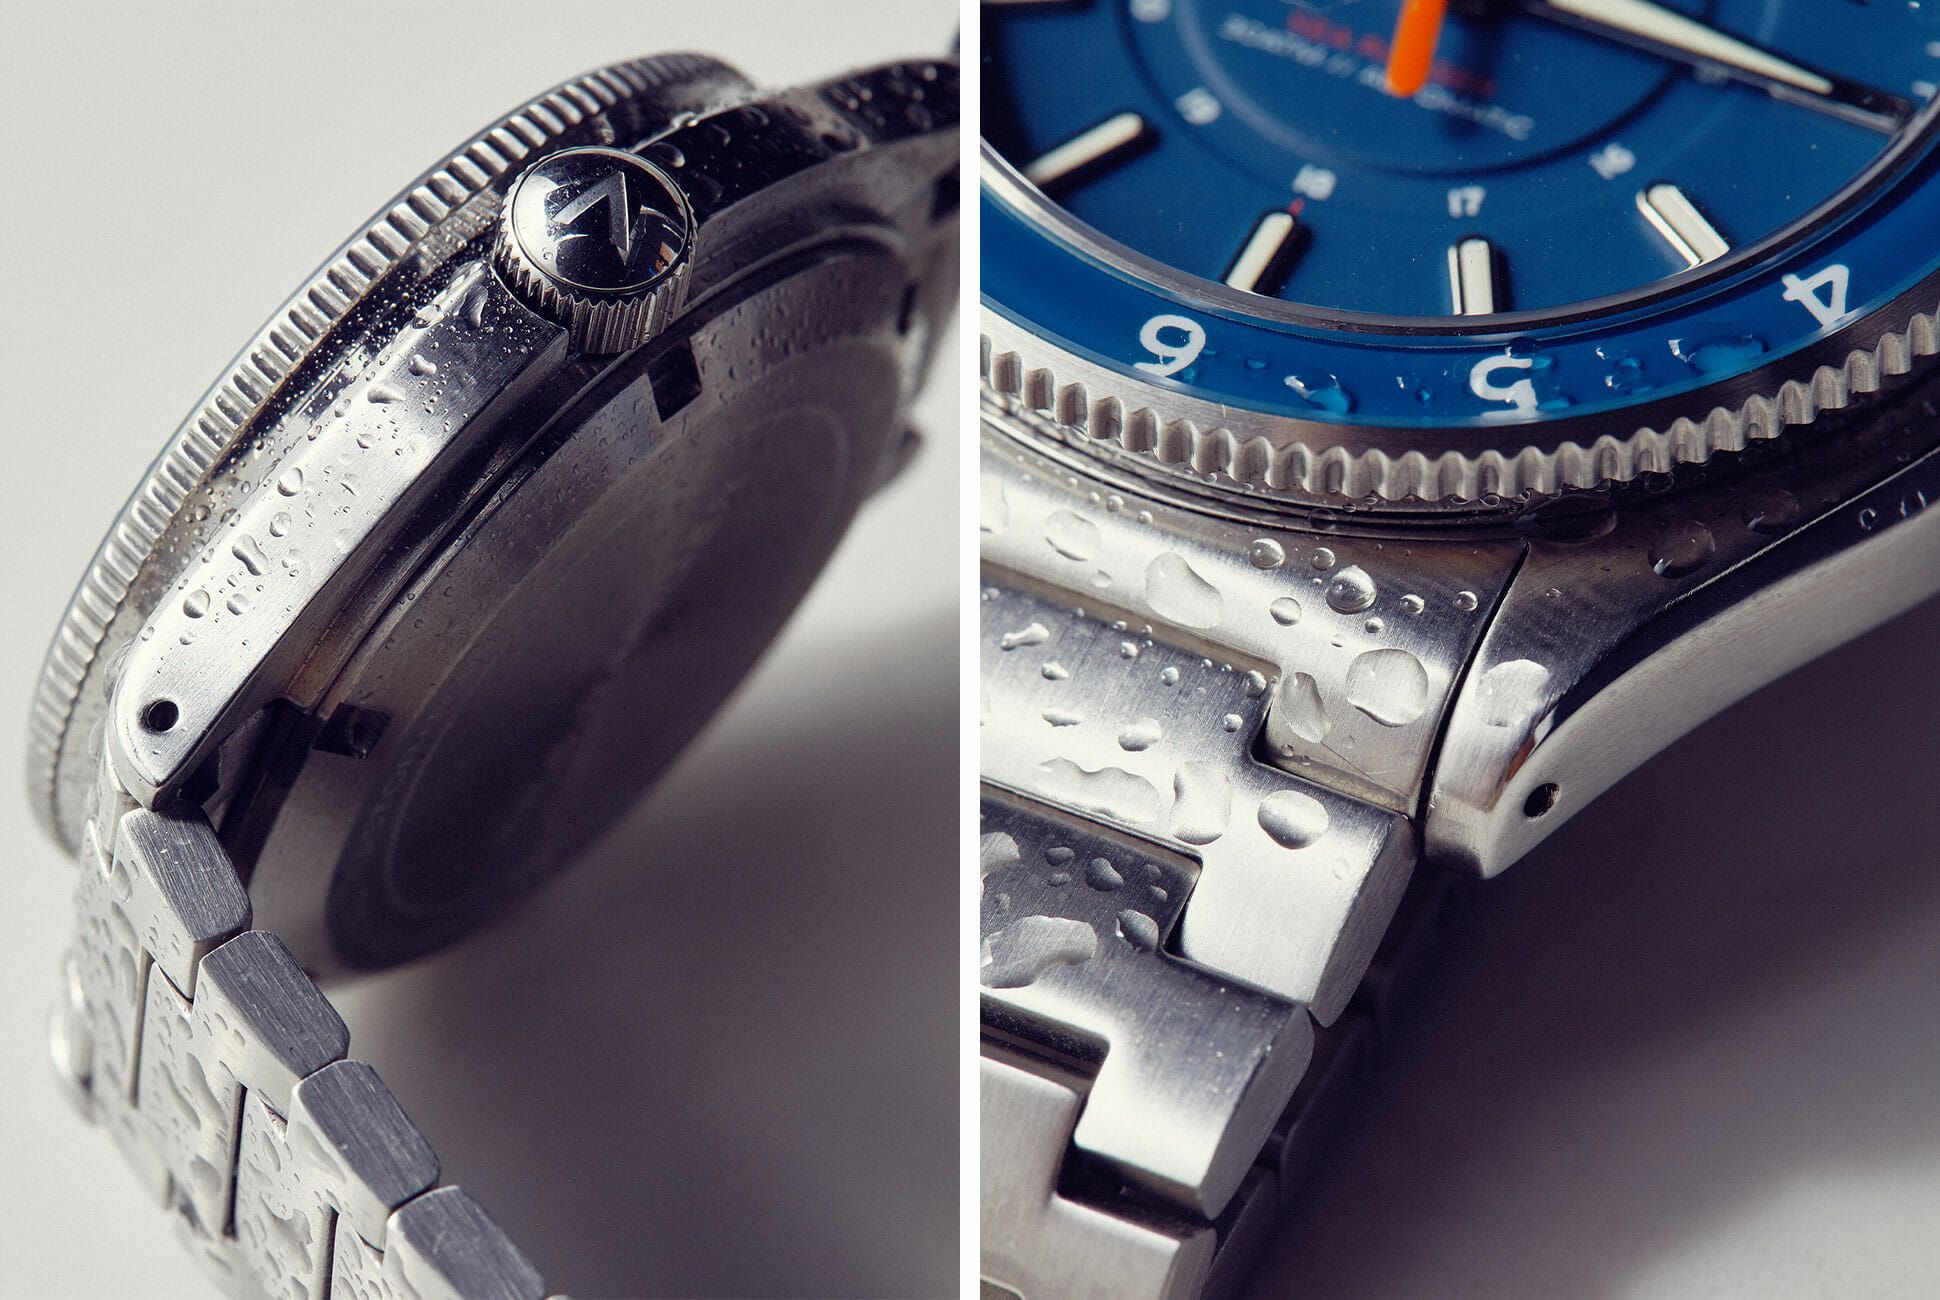 The-Sea-Ranger-is-a-Field-Watch-and-Dive-Watch-in-One-Gear-Patrol-slide-2